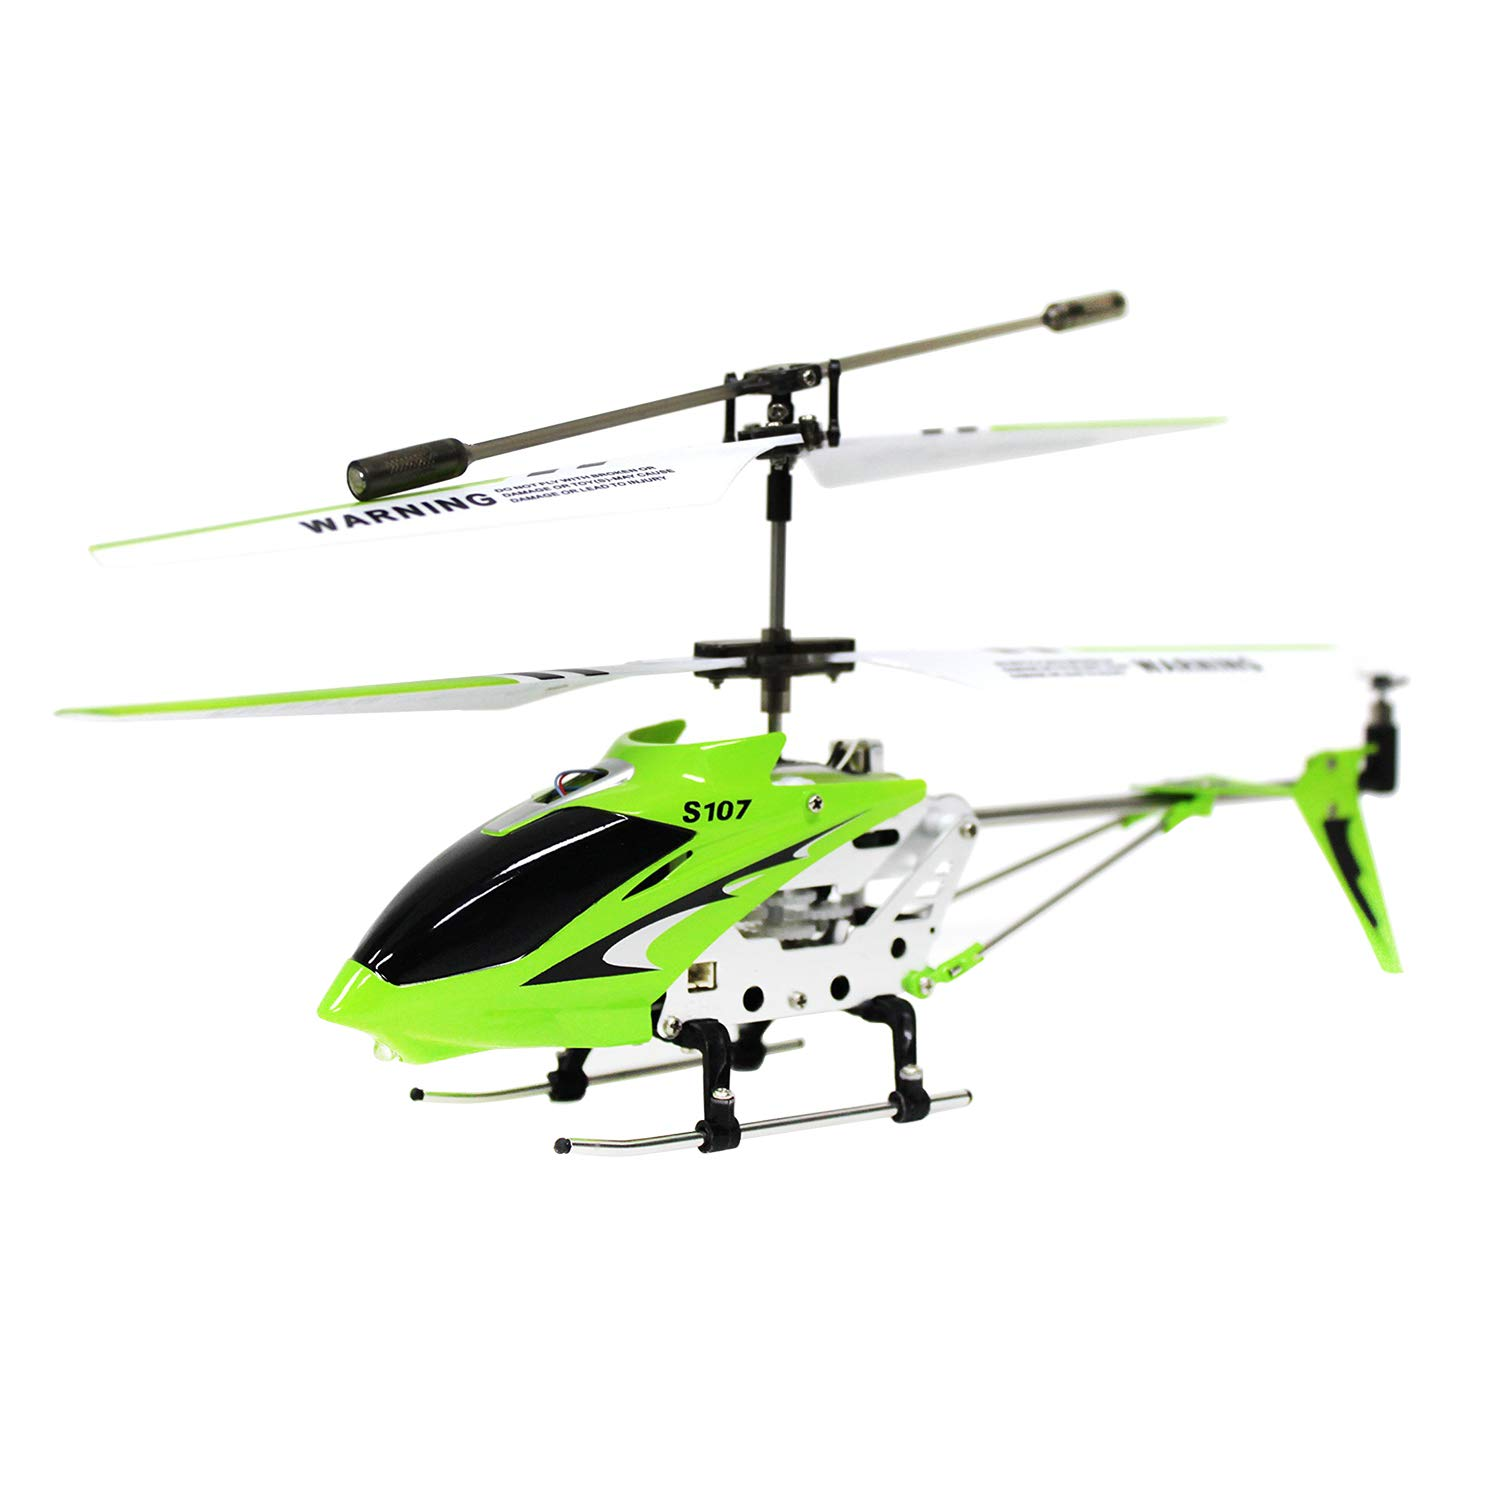 Top 10 Best RC Helicopters Reviews in 2021 9